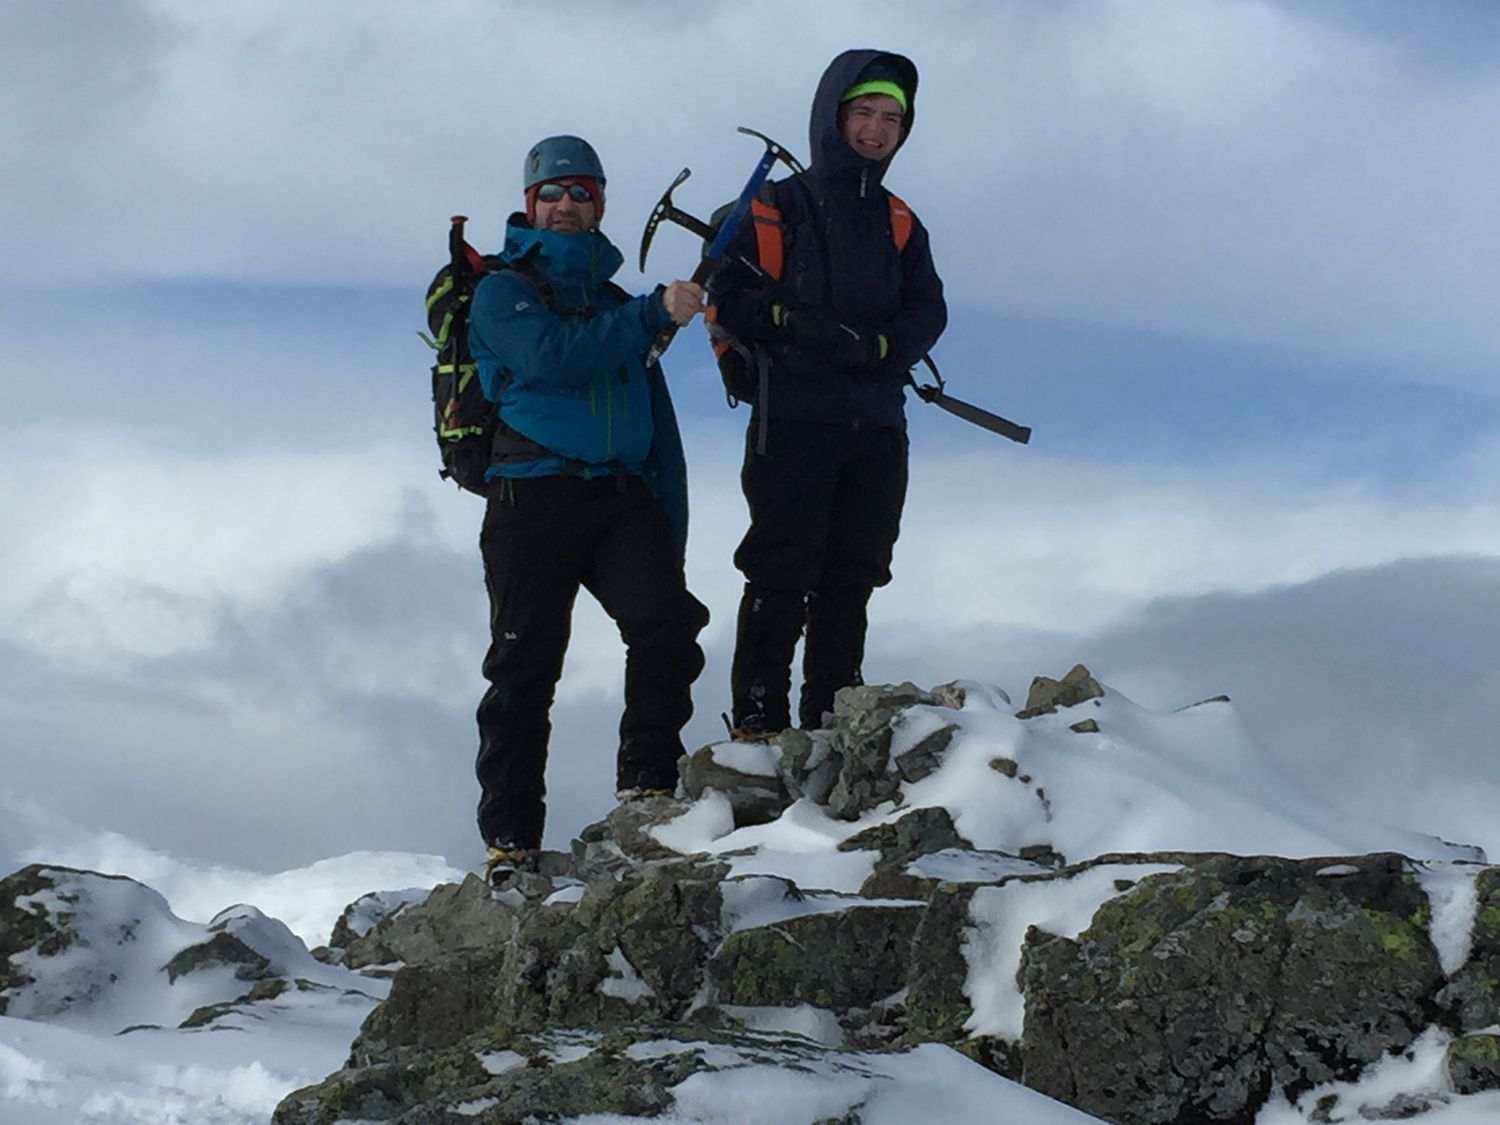 John with son Max on their winter mountaineering course in Glencoe